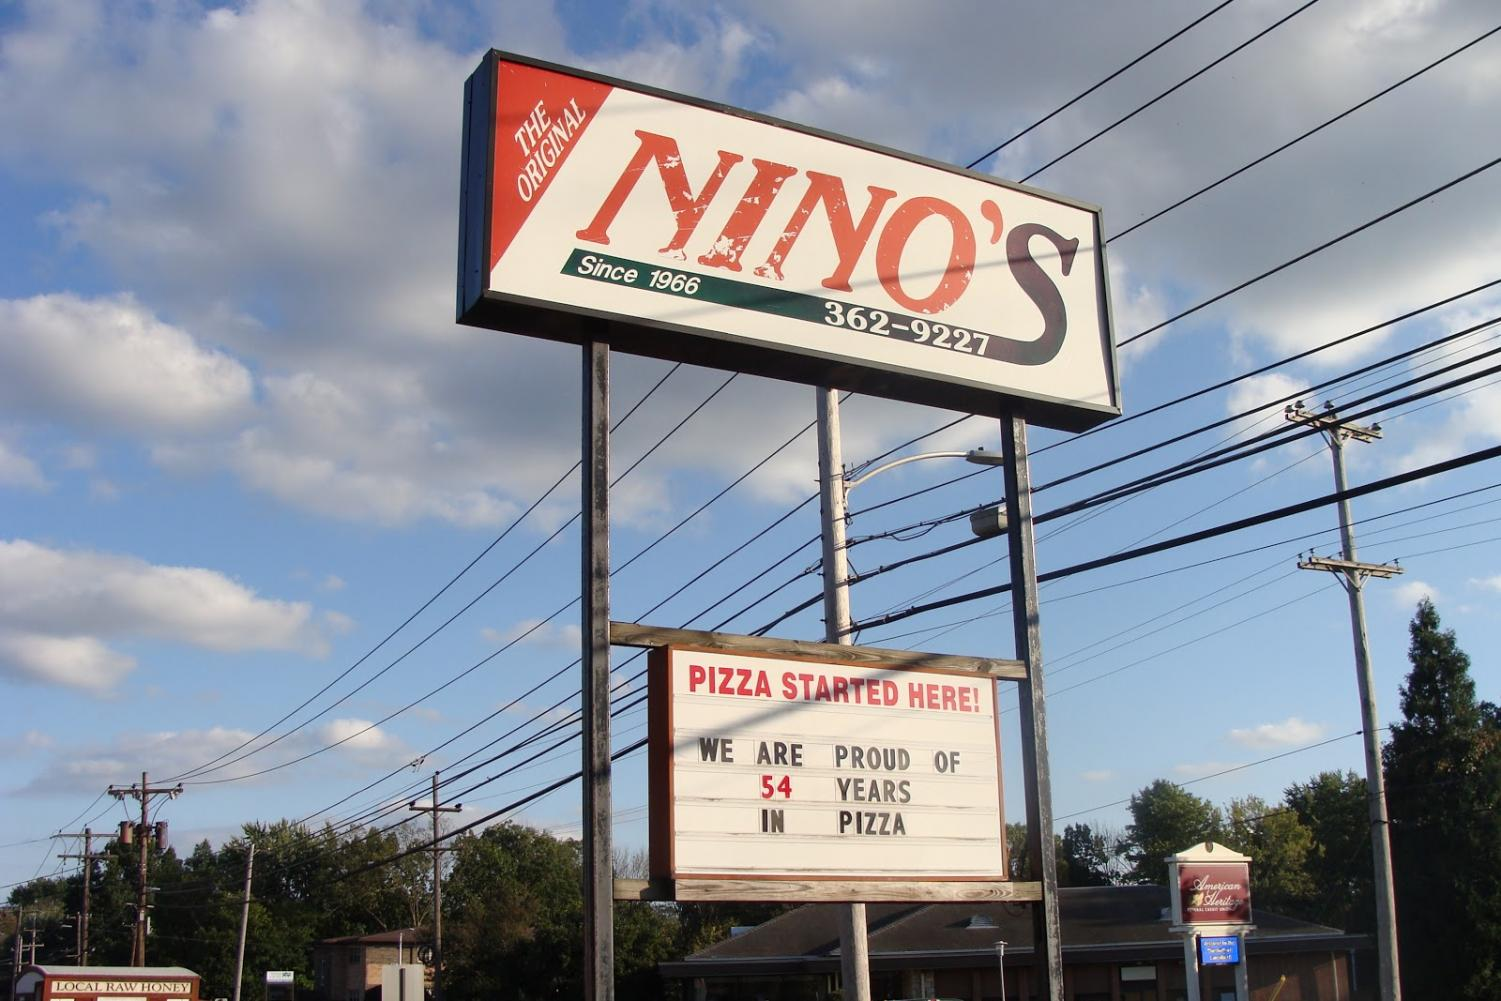 WANT SOME PIZZA? - The Nino's Pizza sign greets customers in Lansdale.